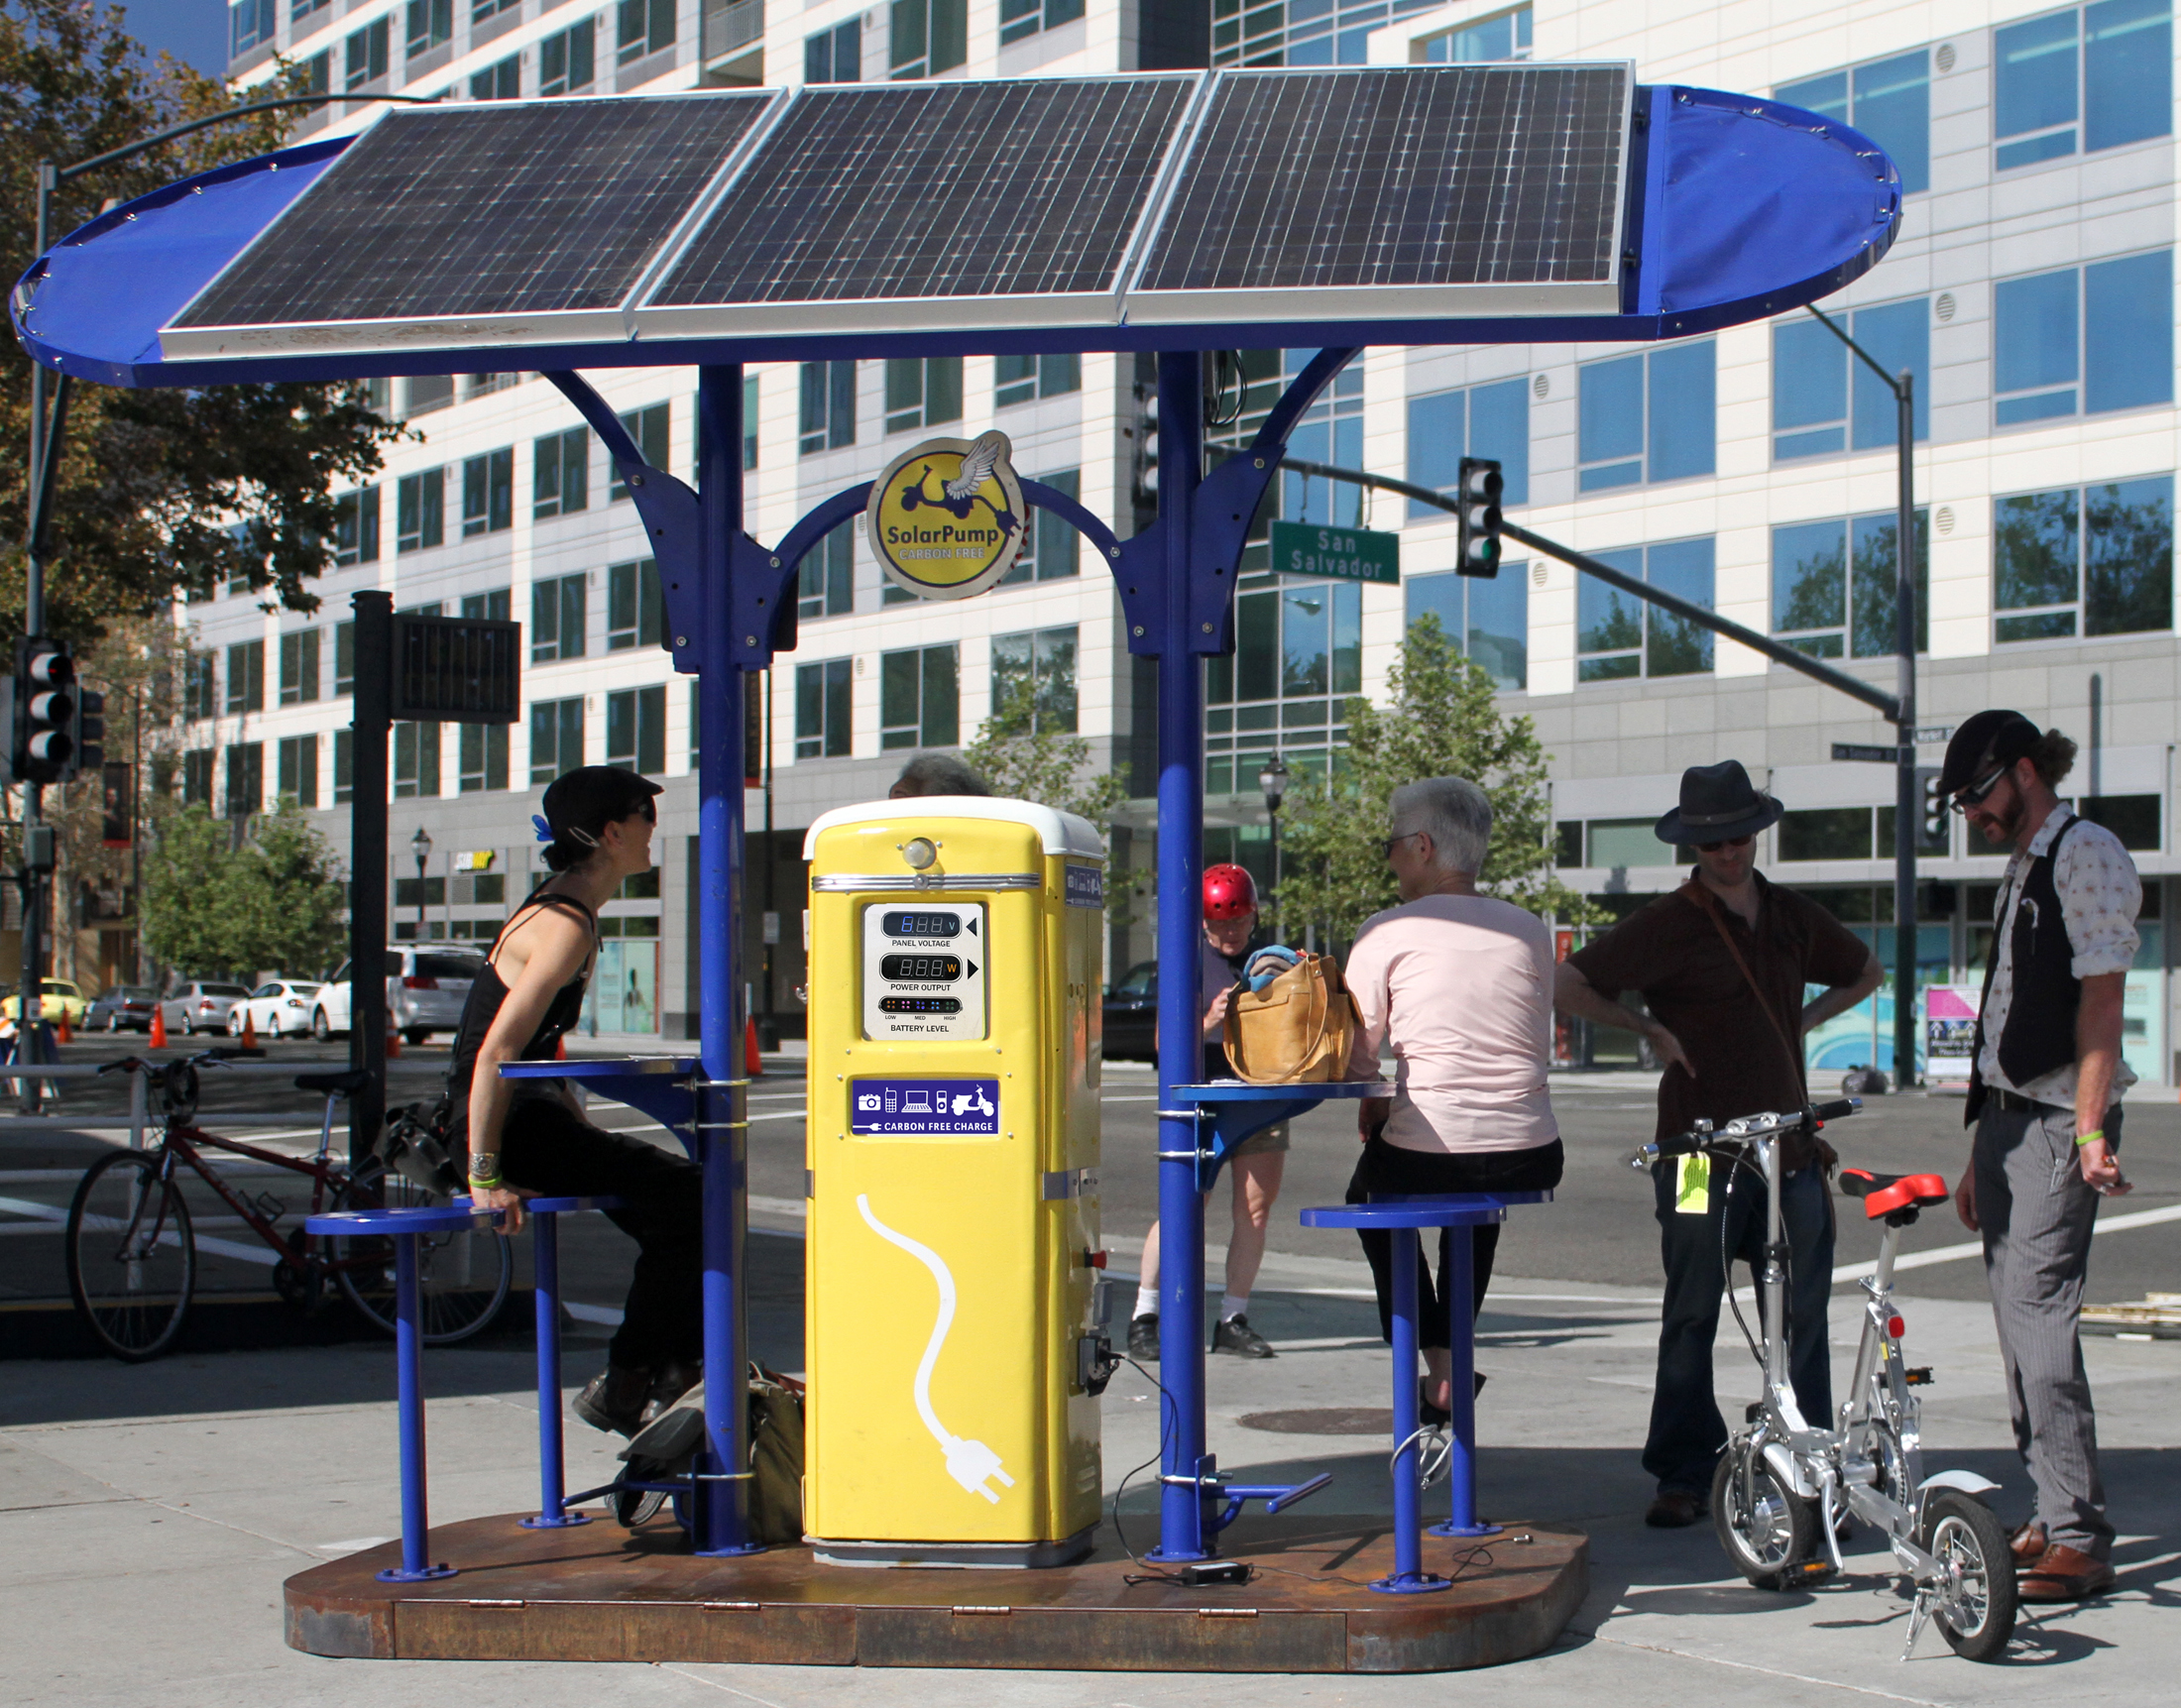 SolarPump Charging Stations